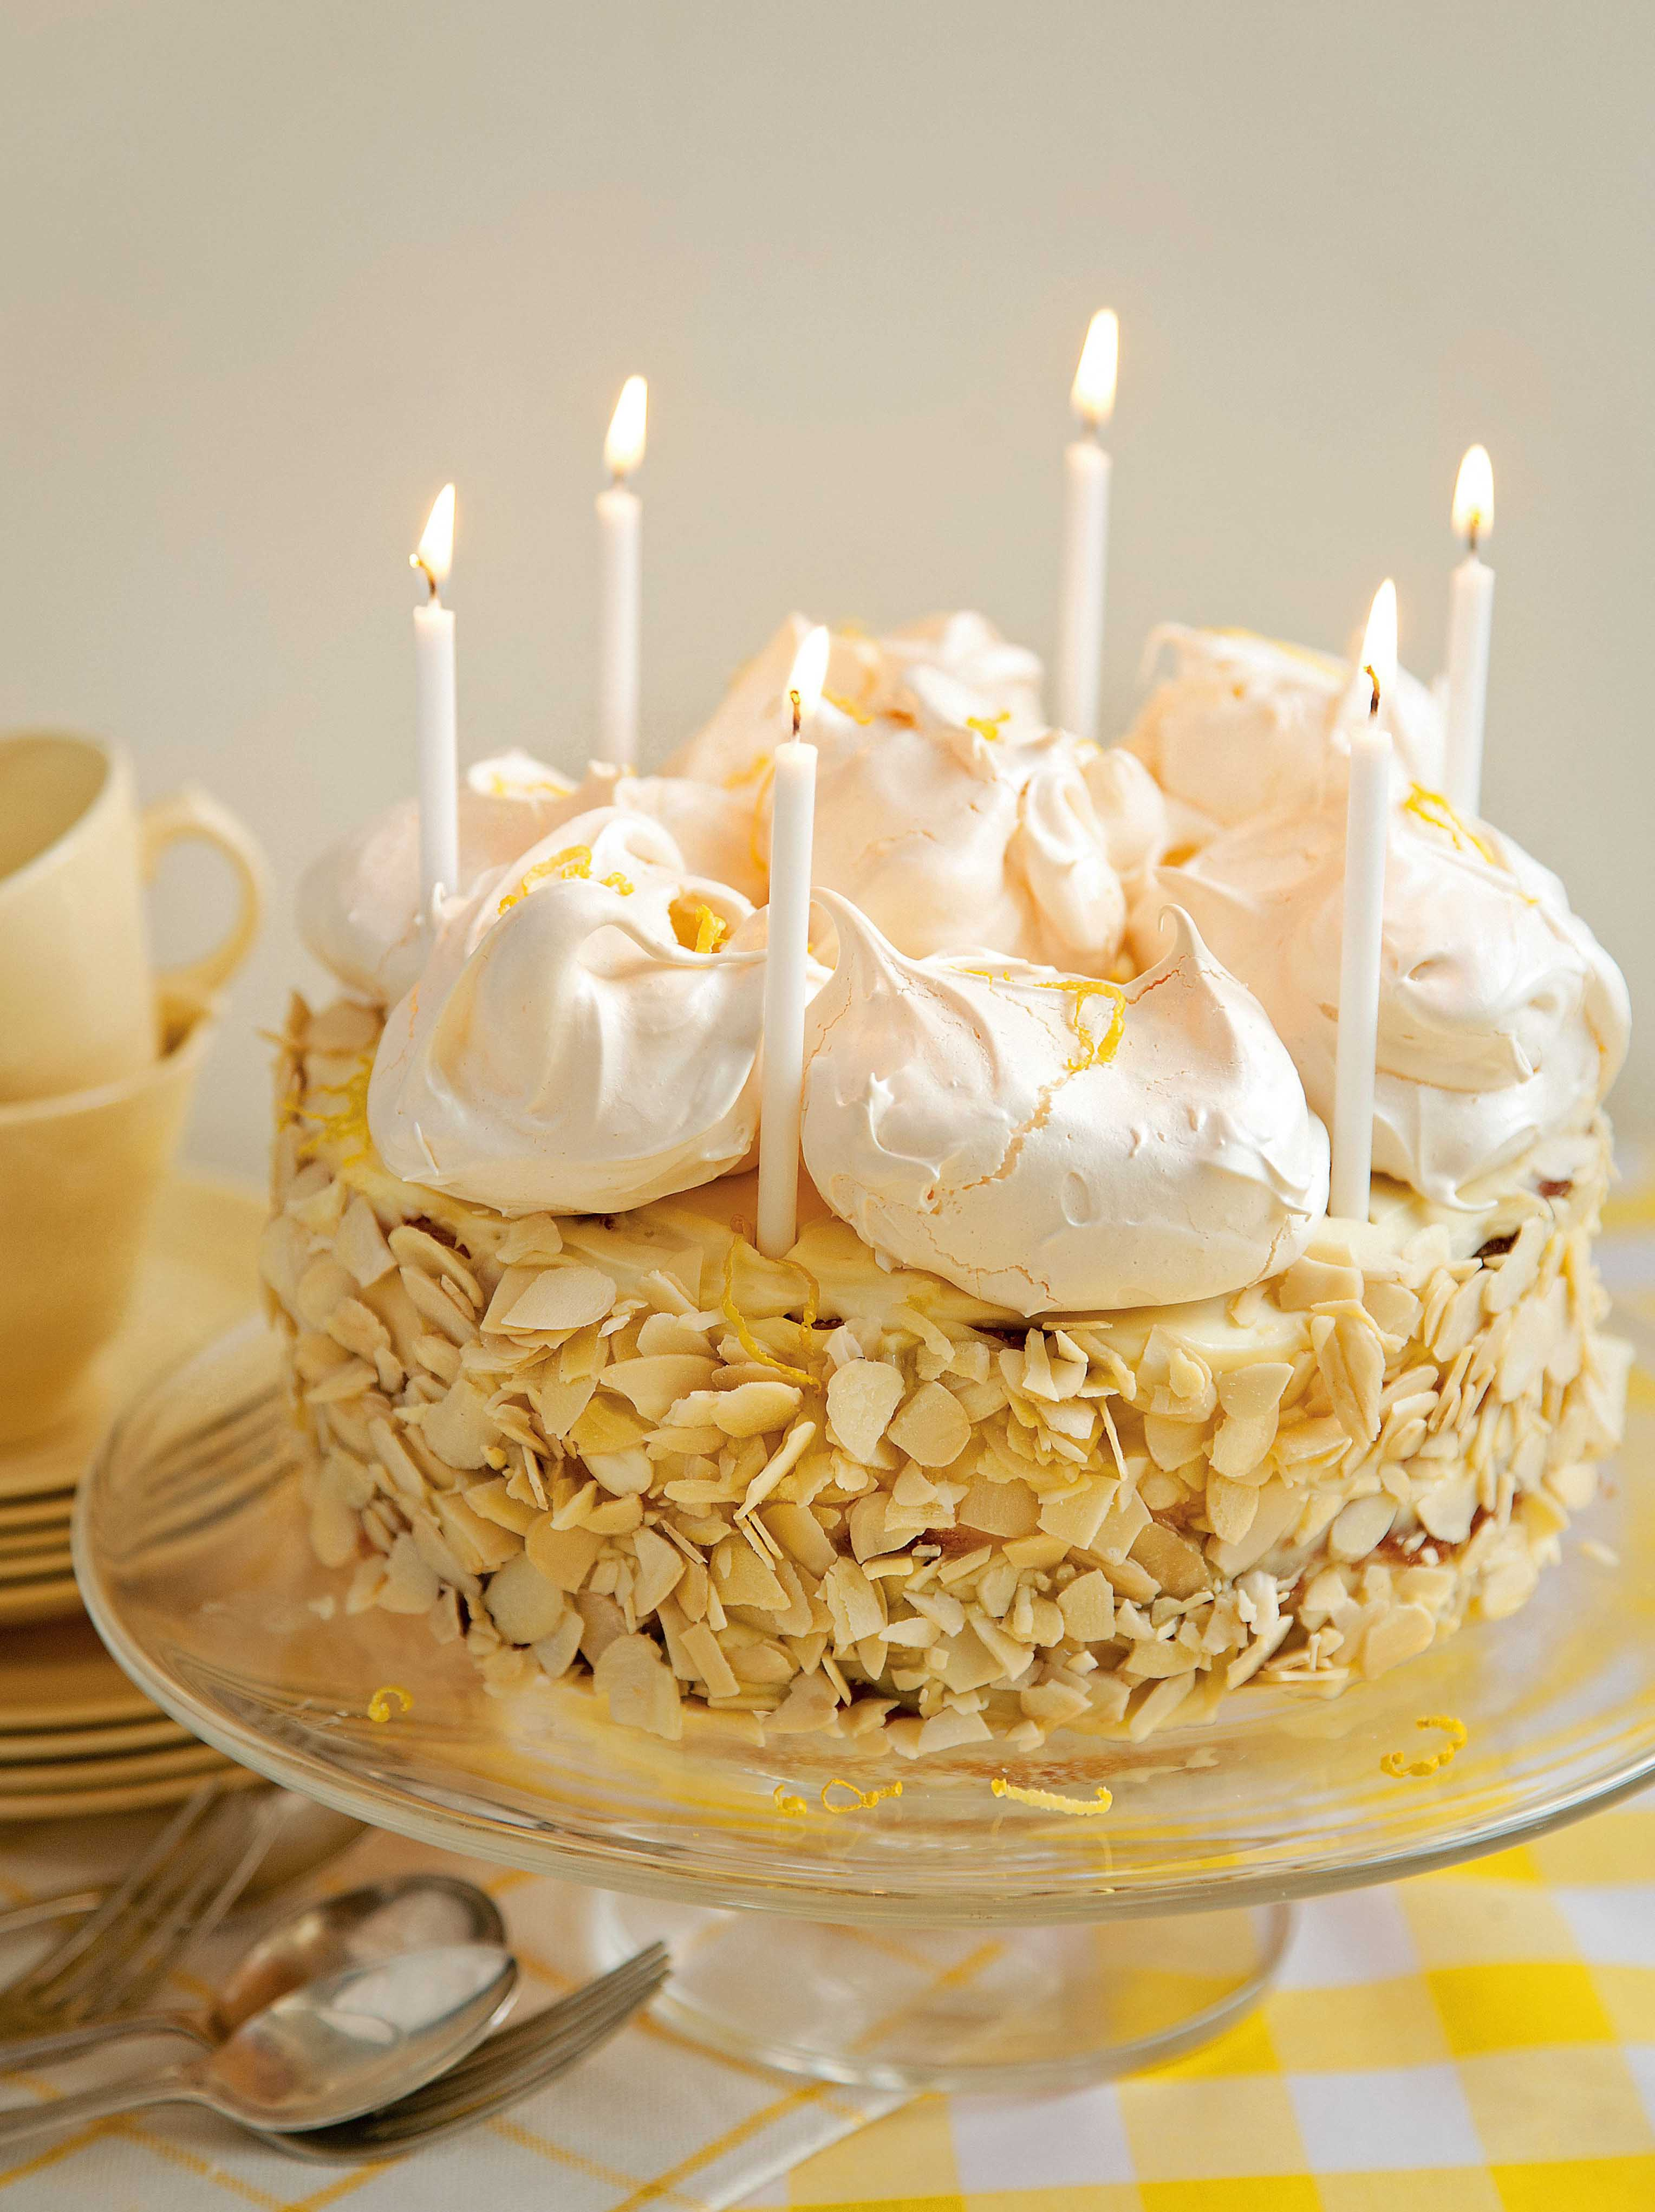 Very lemony meringue cake